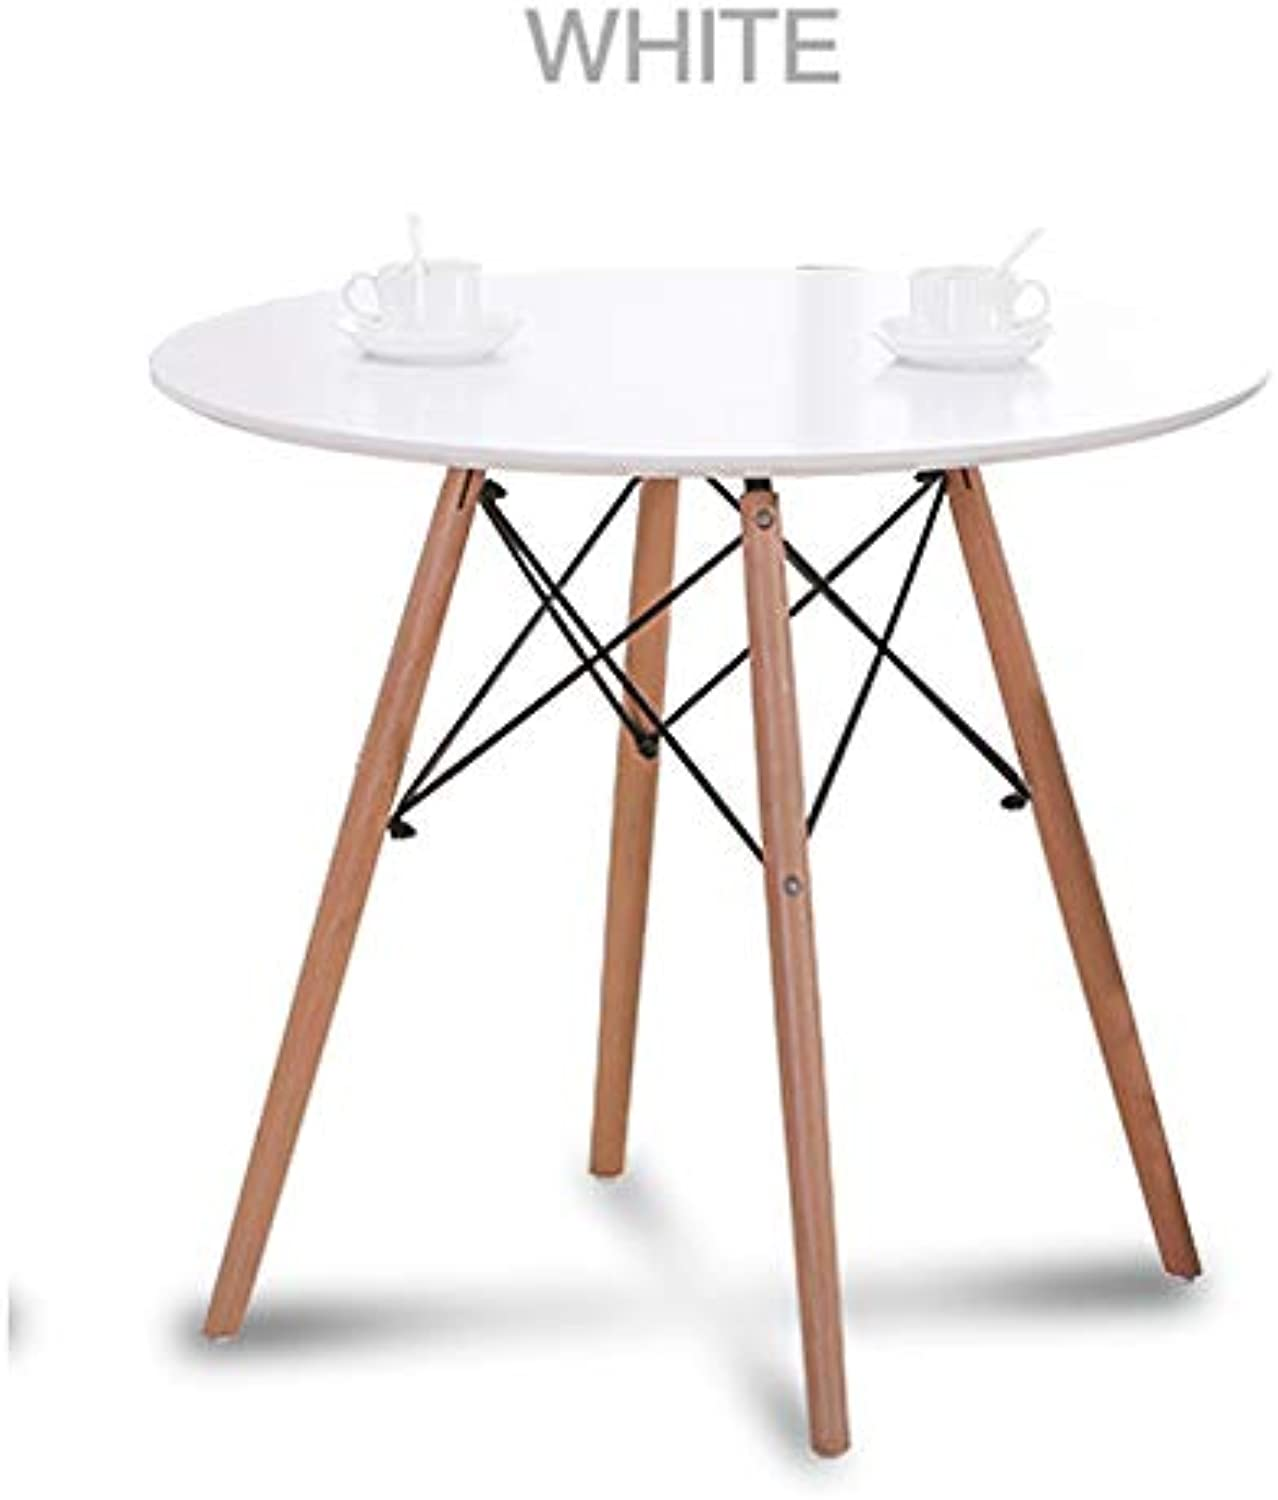 White Table MDF Table top Matt PU Lacquering Solid Beech Wood Legs Adjustable Feet Predectors 60x60x72cm AU Delivery